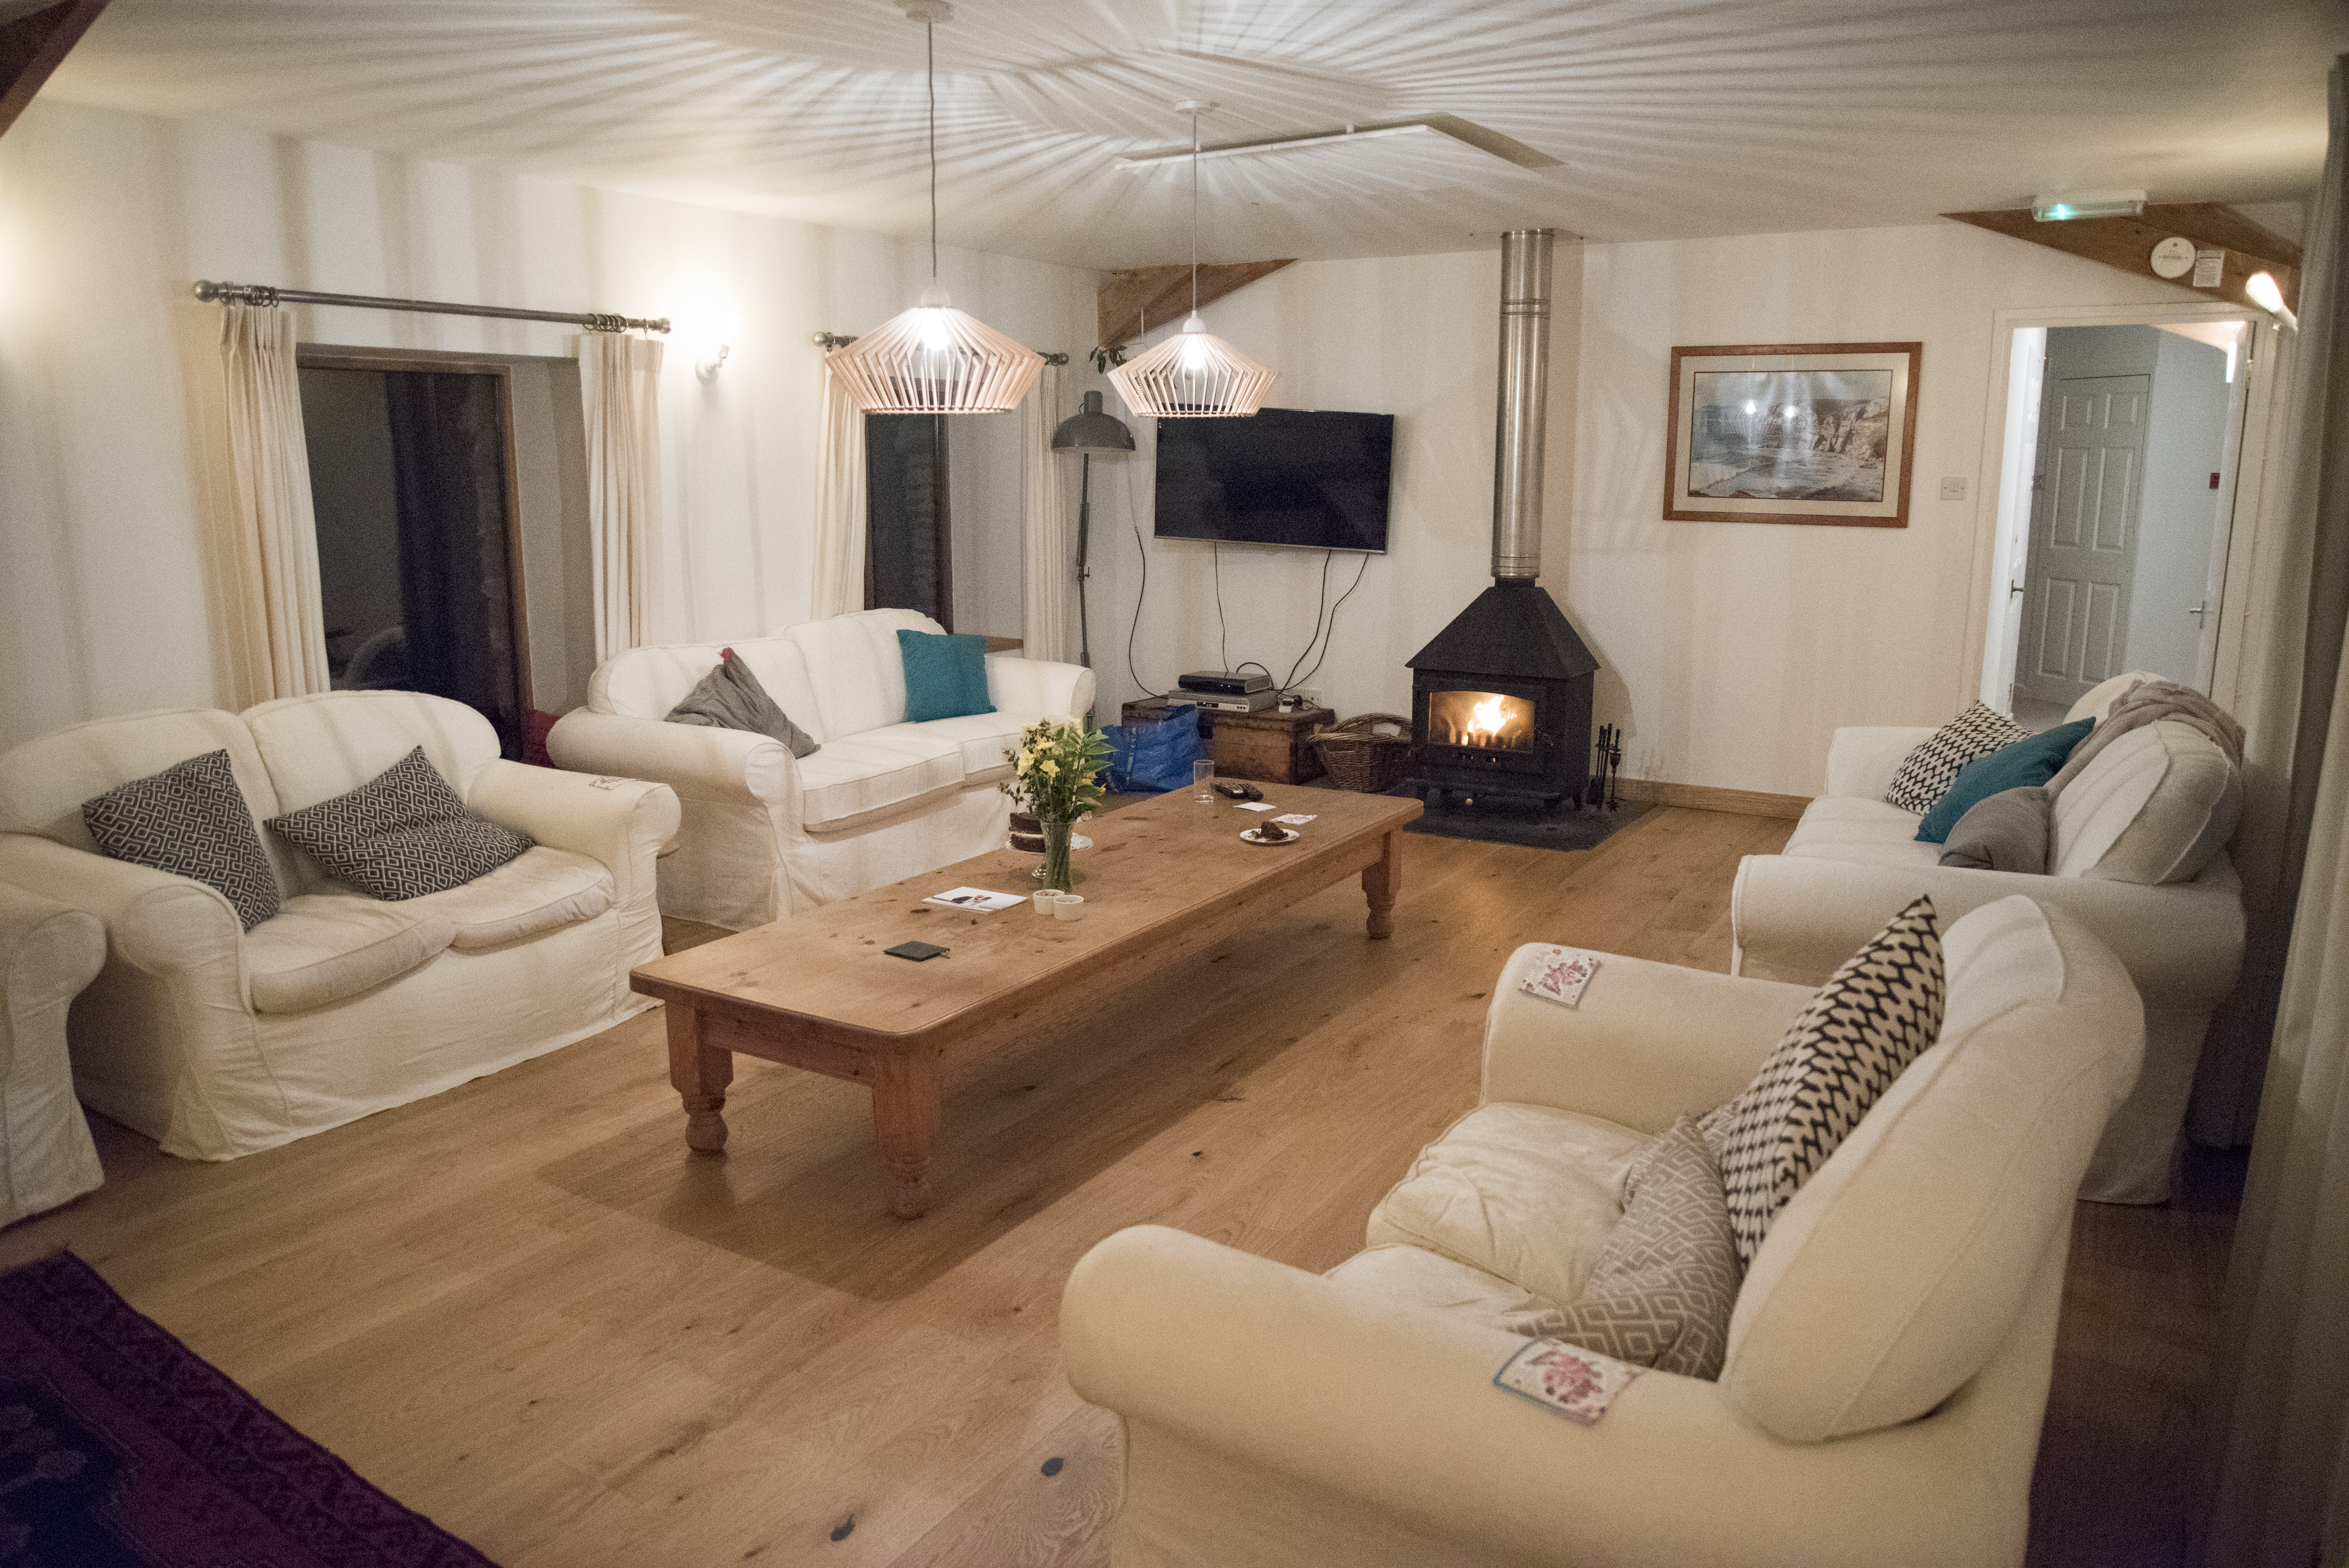 Sewing retreat, Devon, The shippon, Log fire, comfy sofas